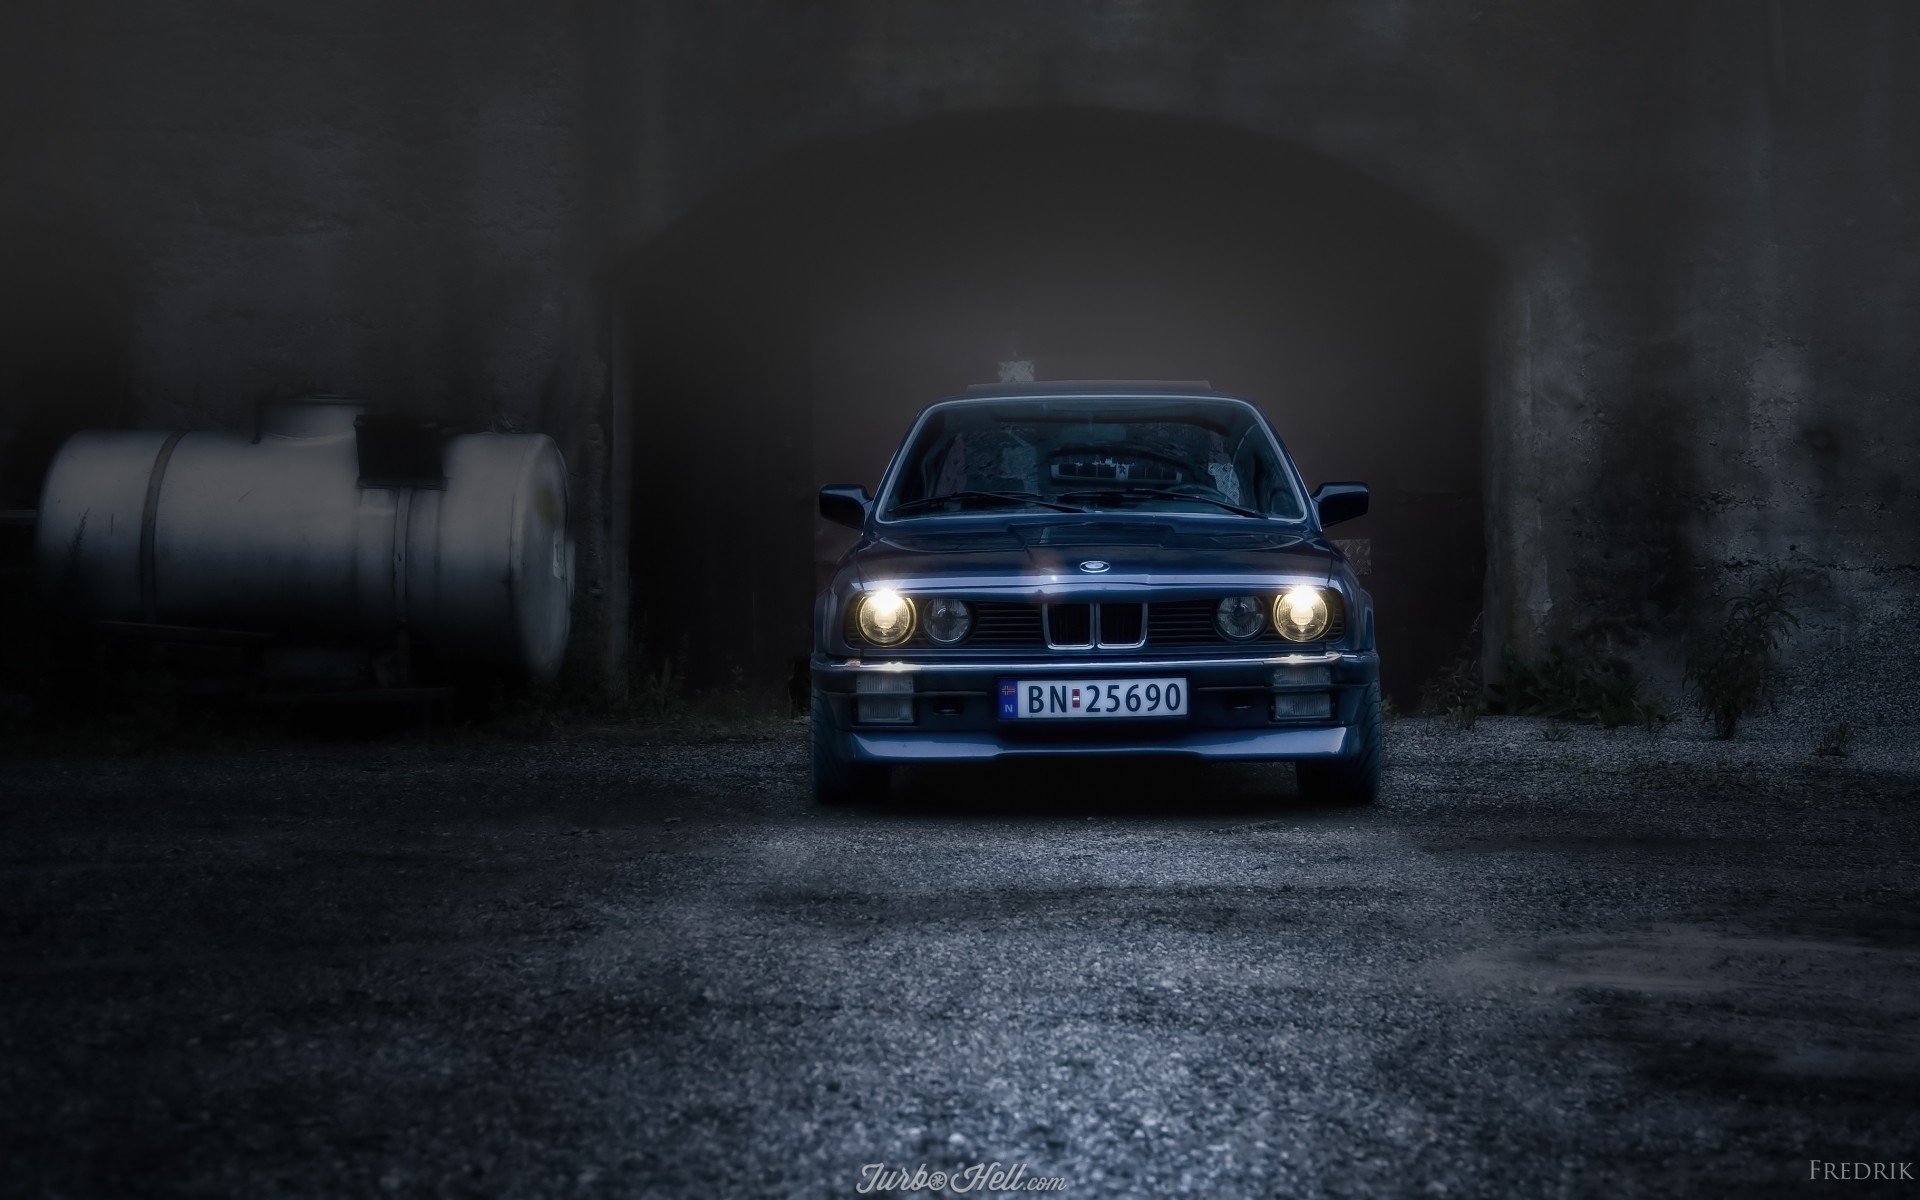 1920x1200 Bmw E30 Wallpaper image 70